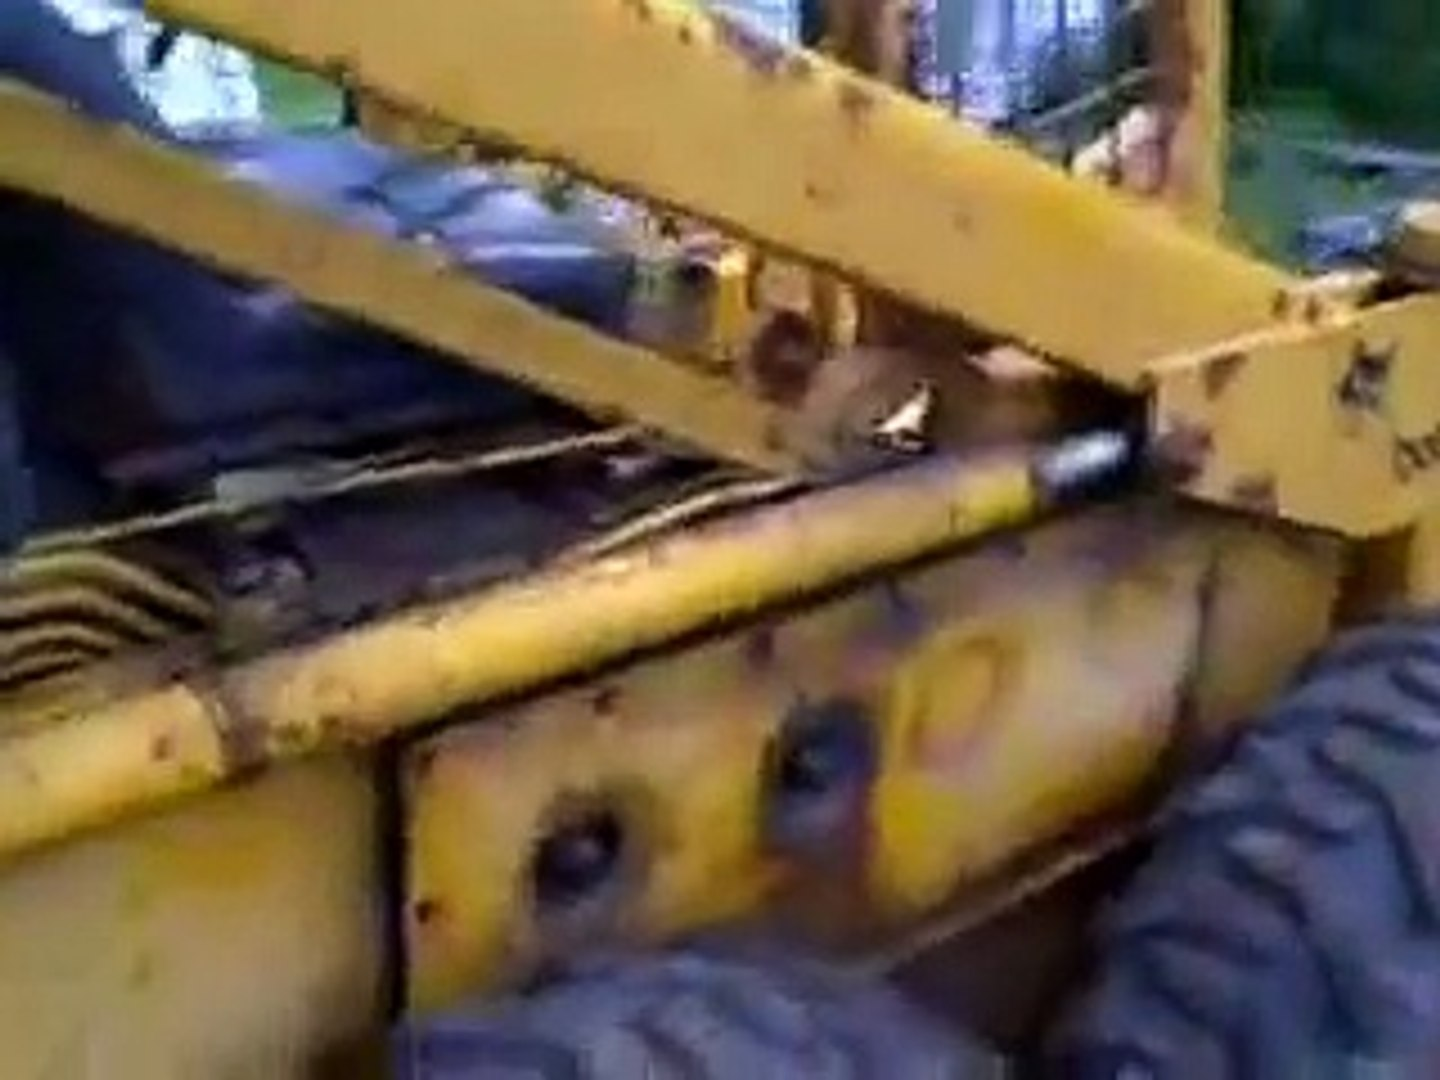 Bobcat 610 Clutch inspection and information